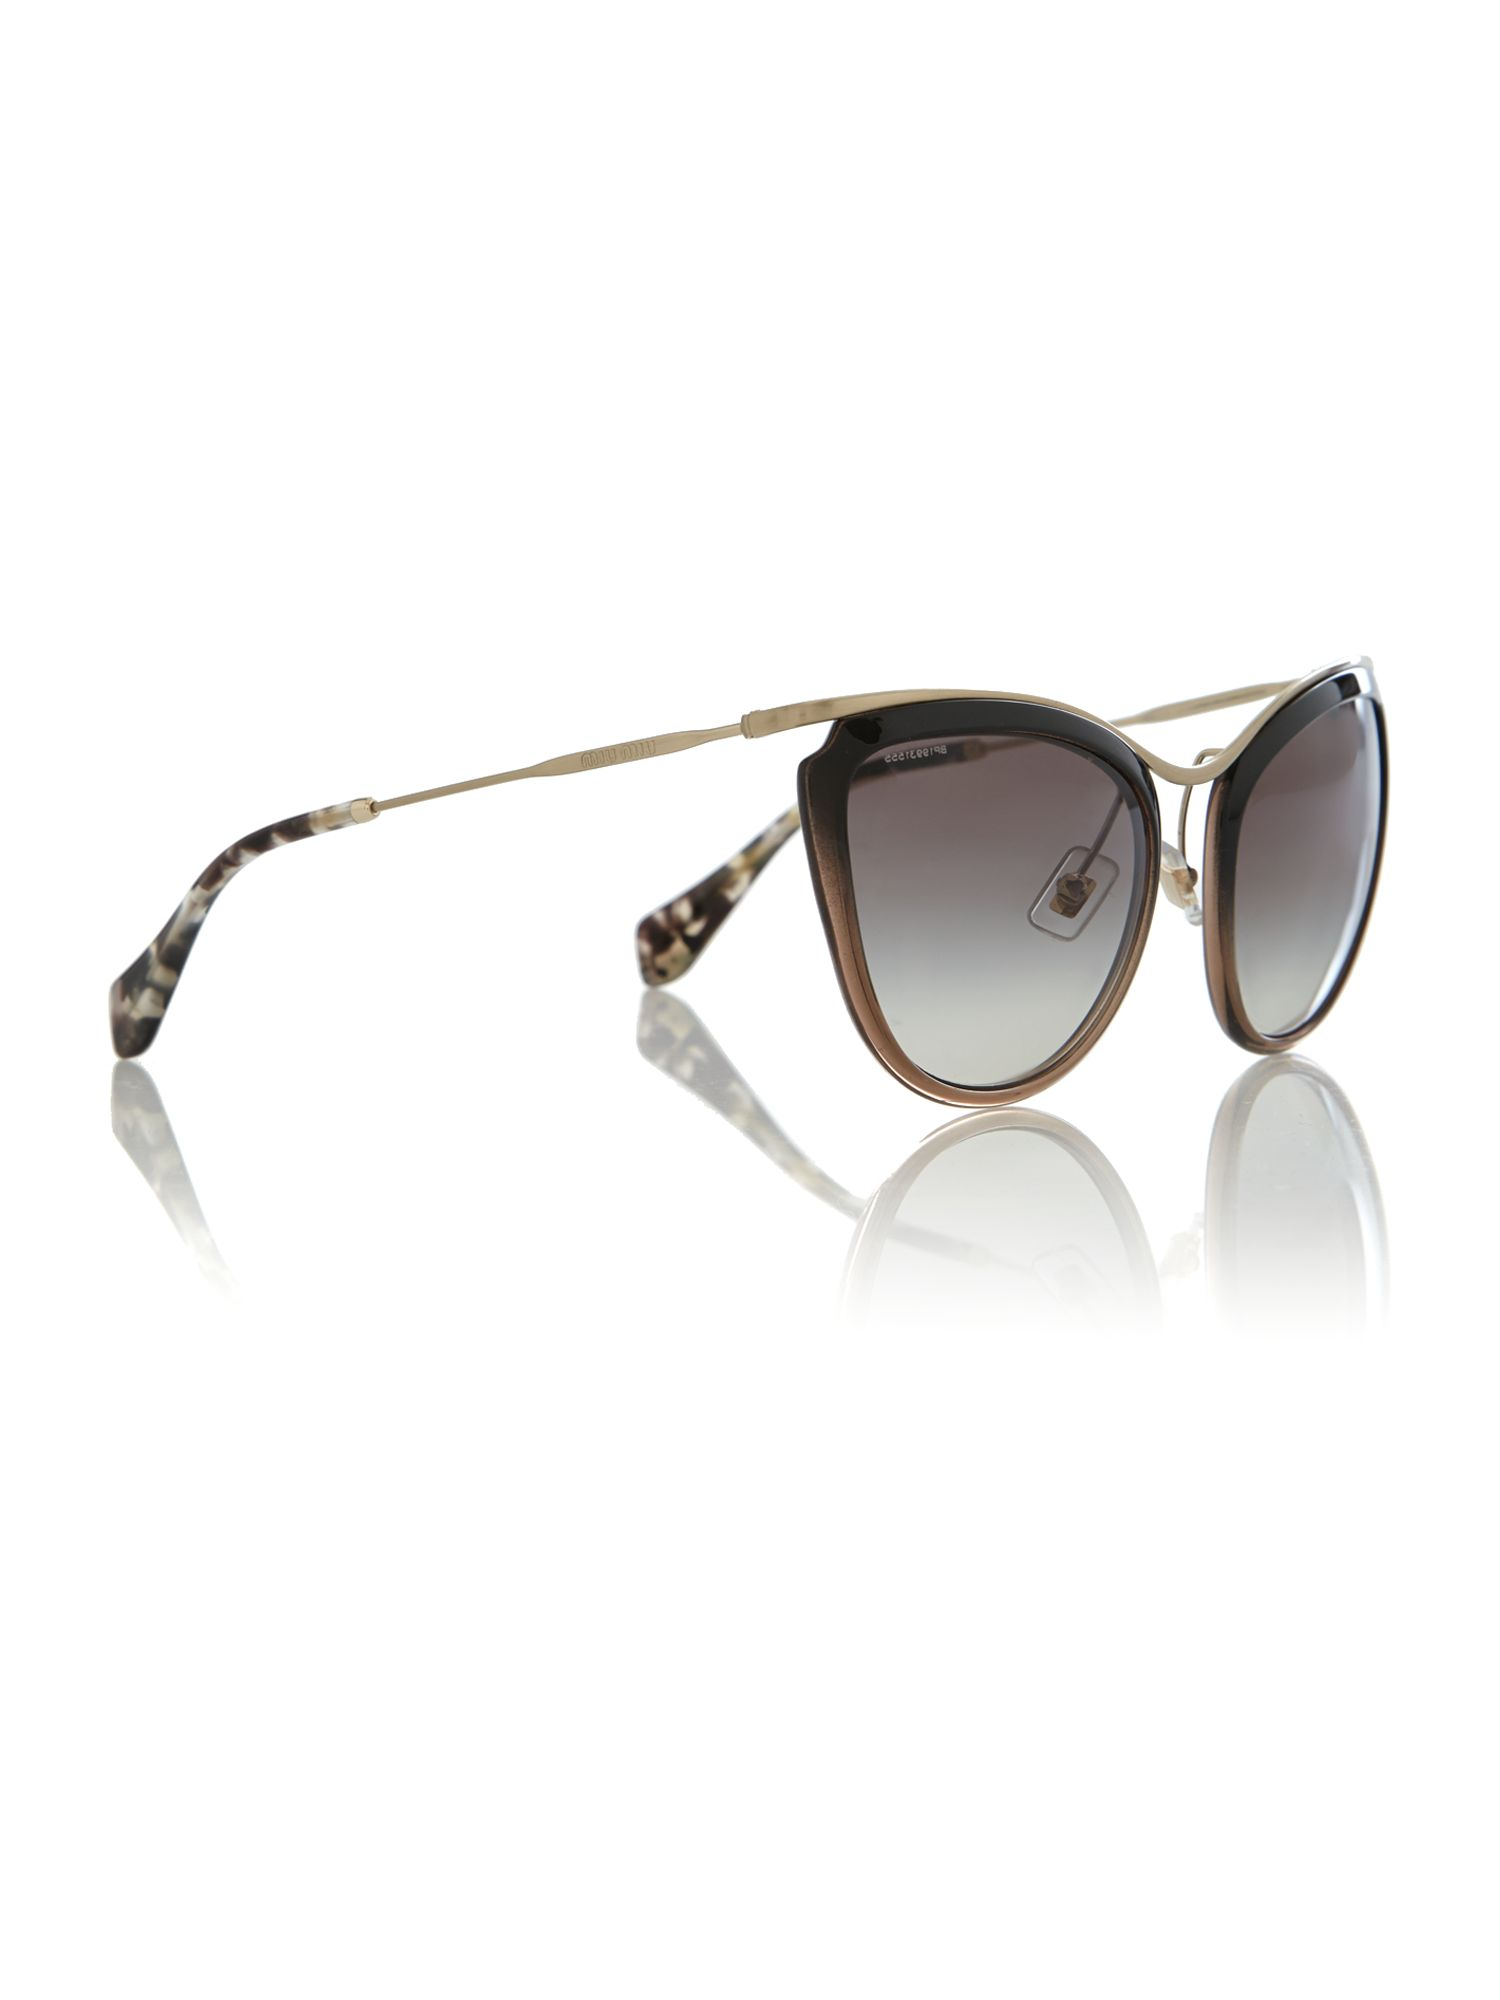 Ladies 0mu 51ps sunglasses